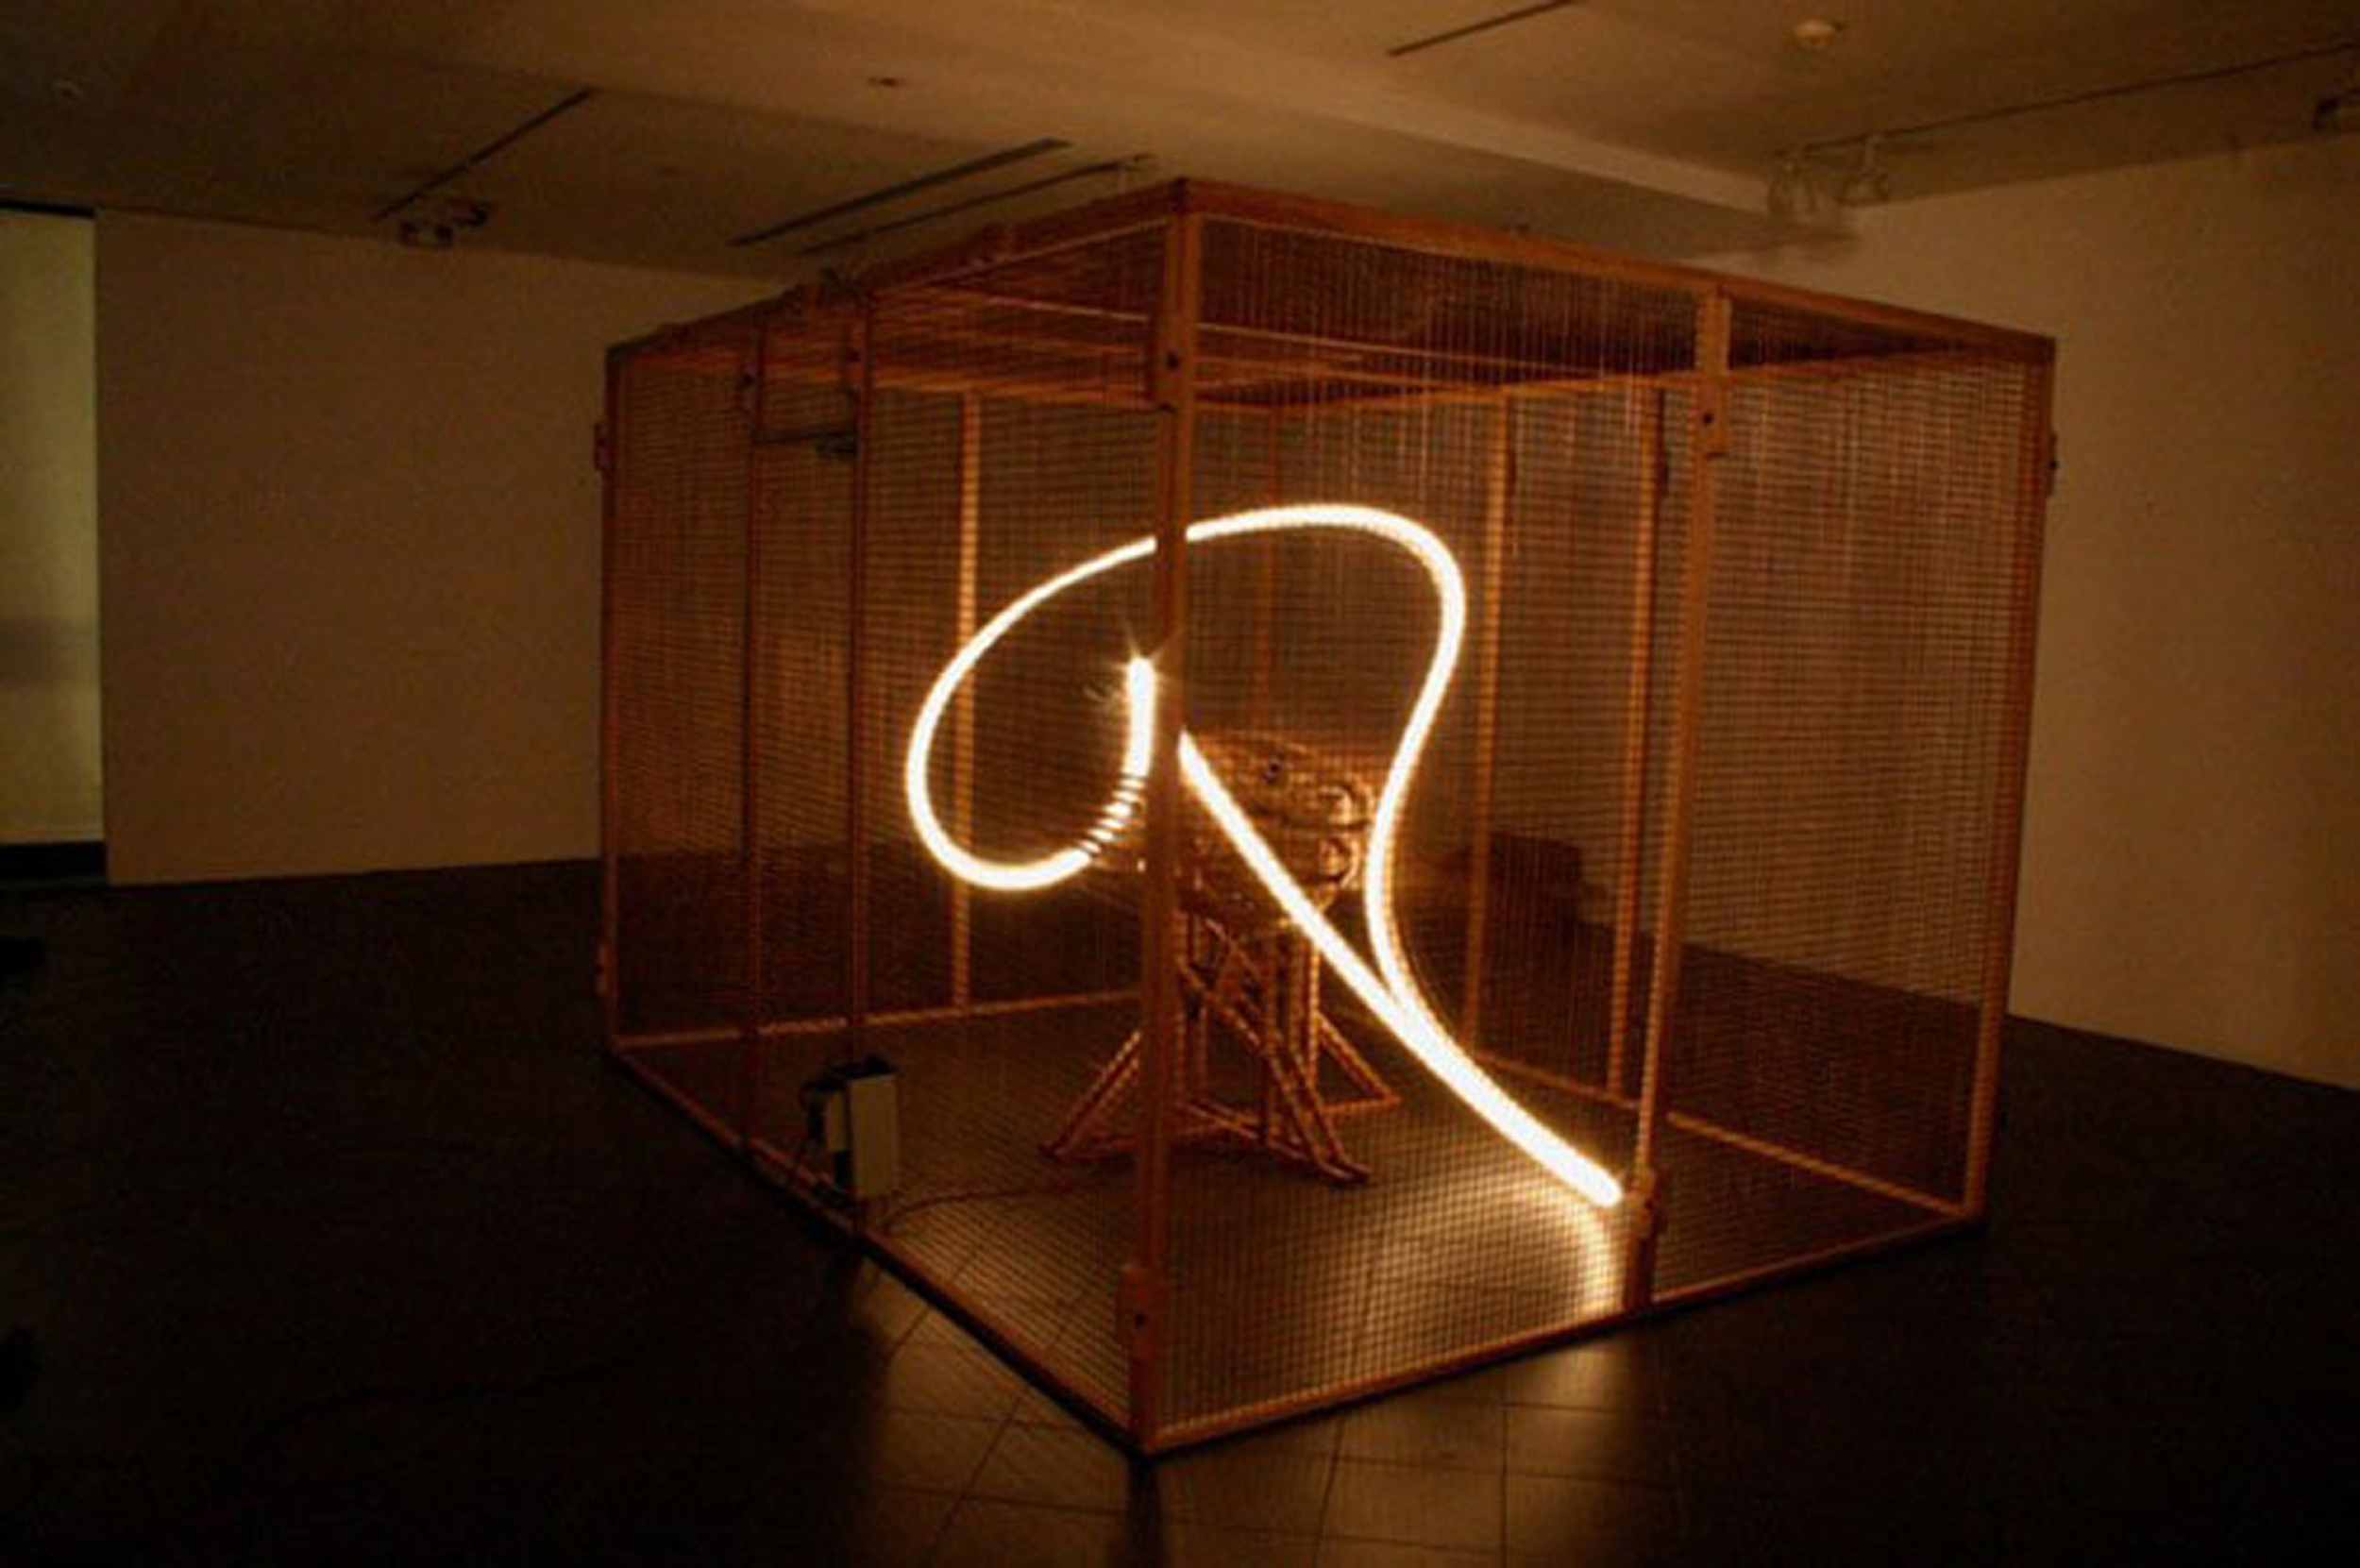 SHAWCROSS, CONRAD, Light Perpetual, 2004